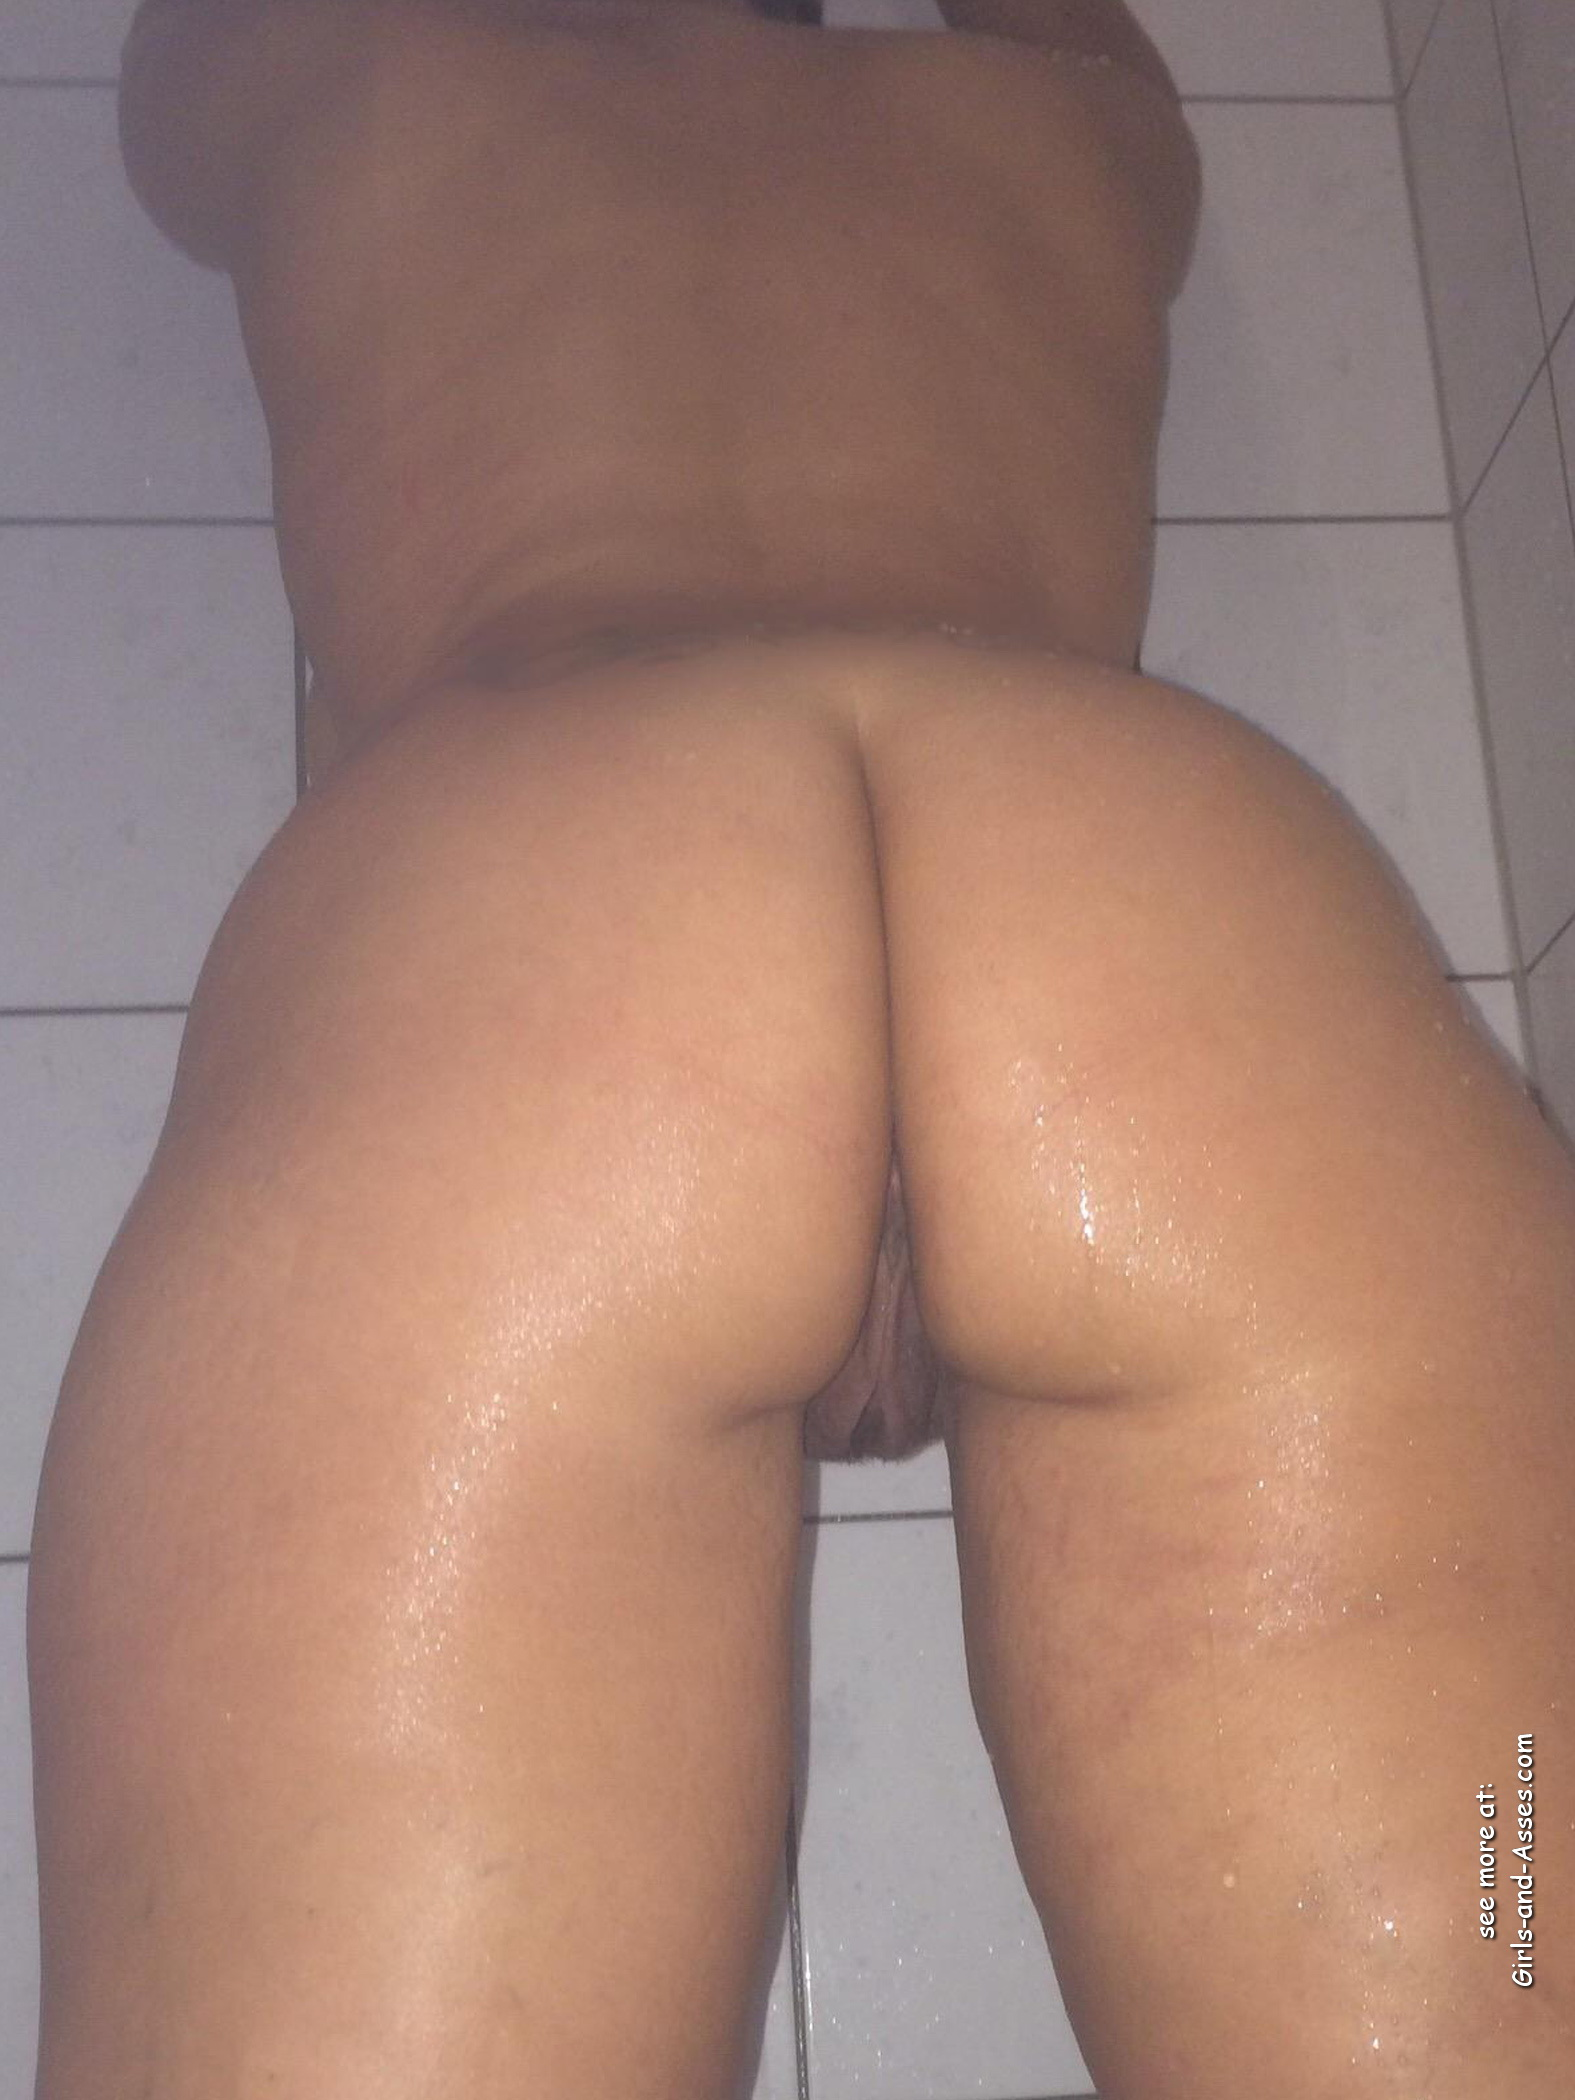 naked mom ass picture 00446